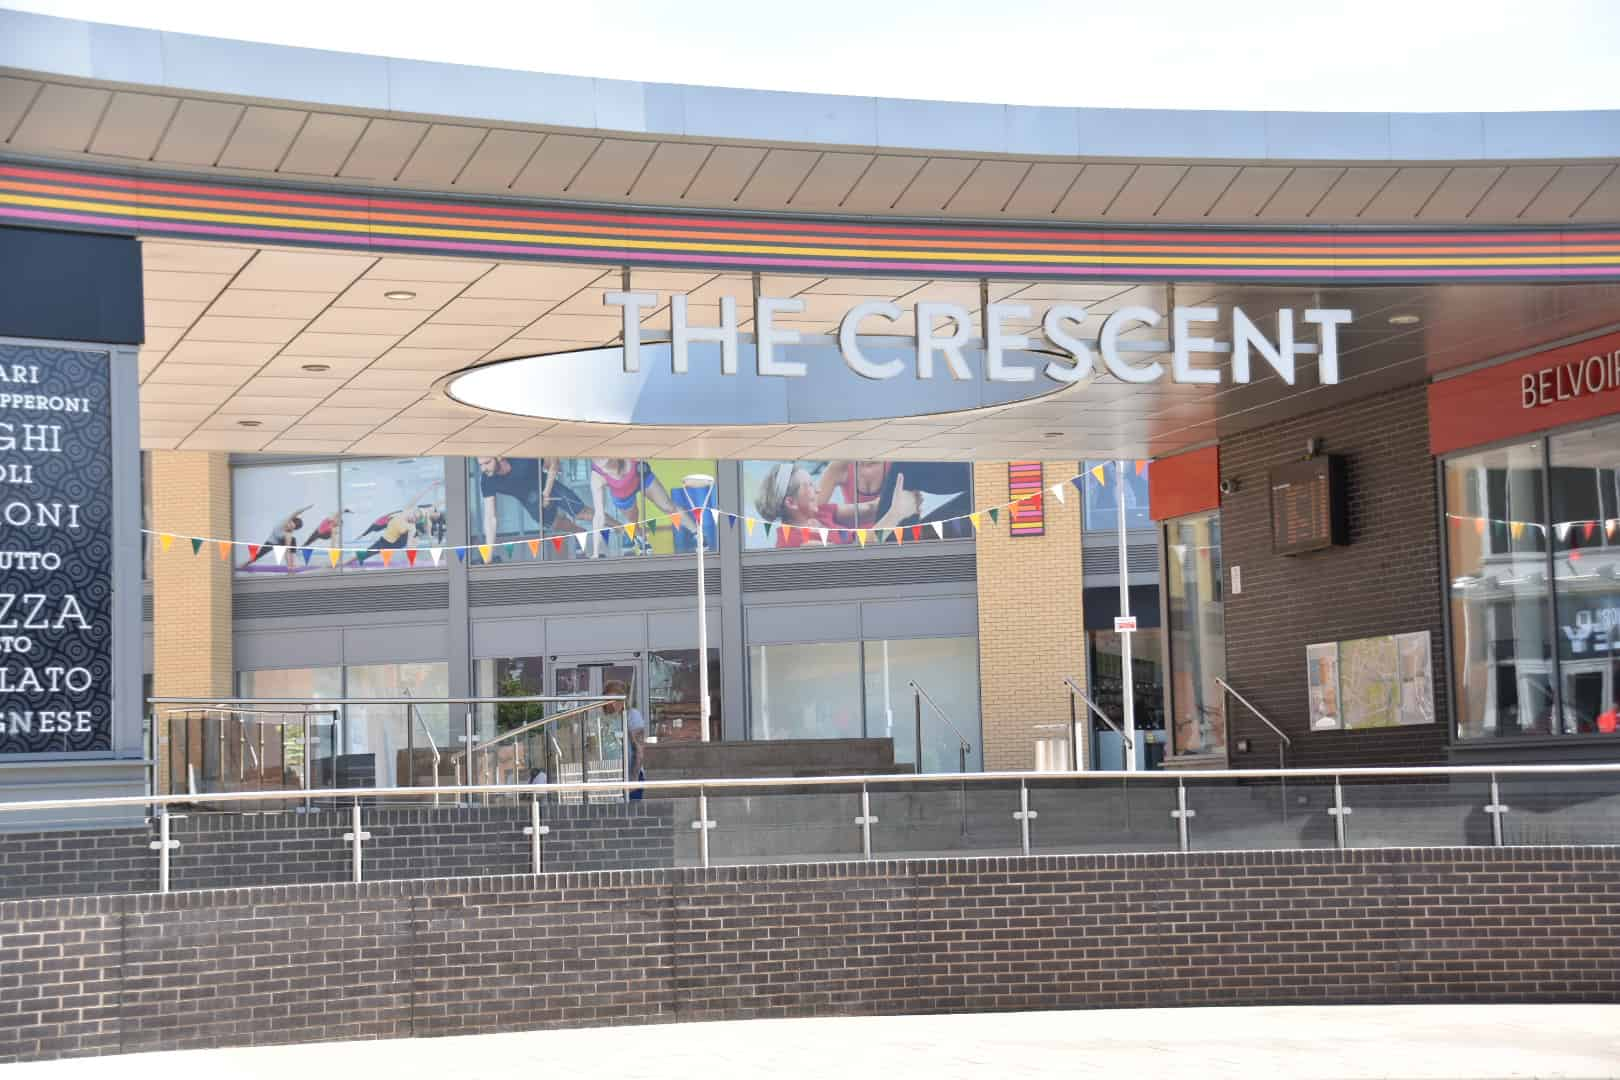 The Crescent Shopping Centre